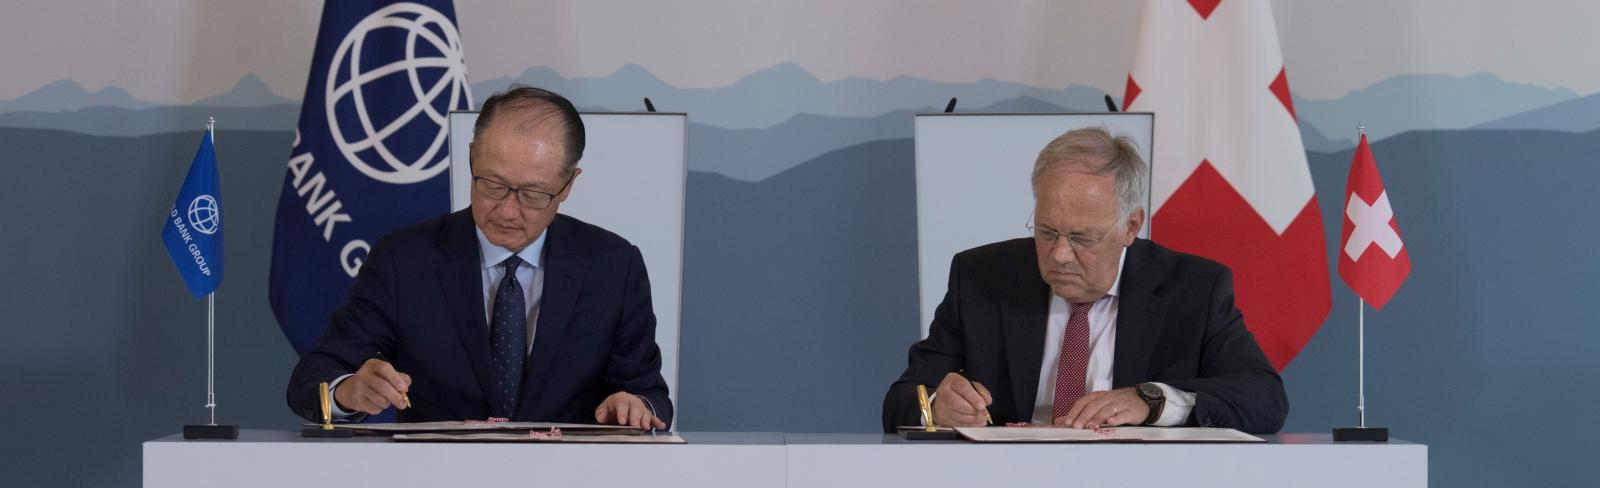 World Bank and Switzerland Sign New ESMAP Agreement